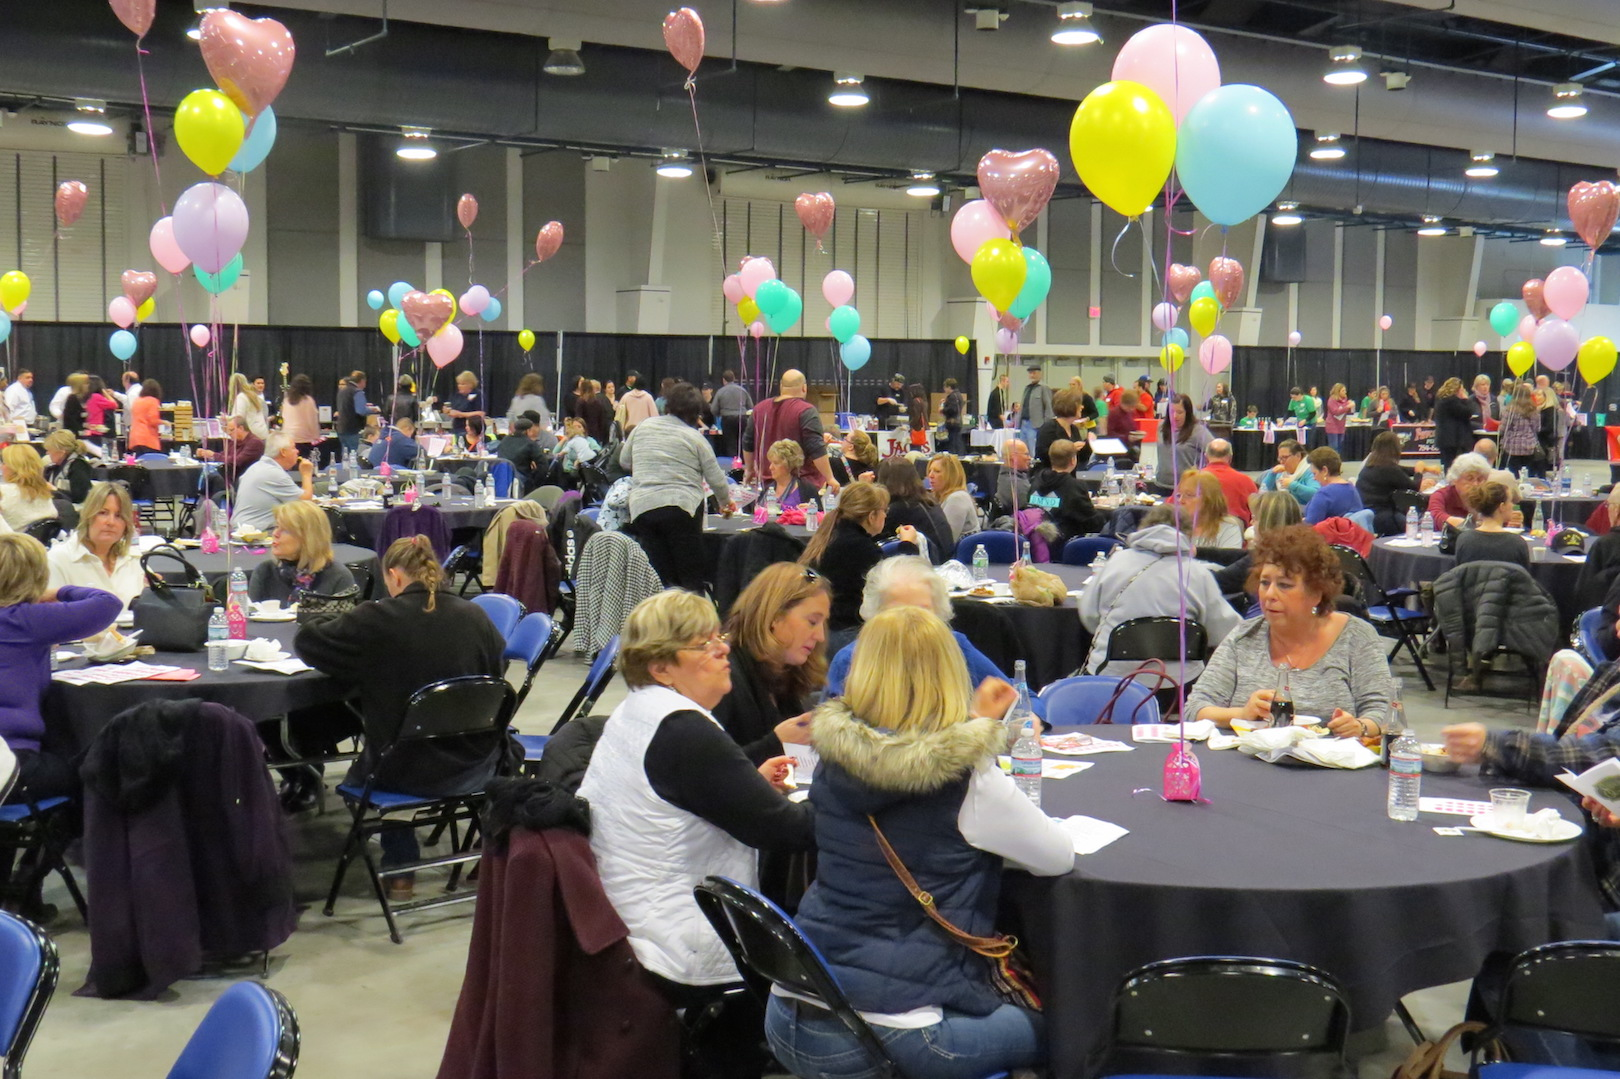 Crowds filled The Conference & Event Center Niagara Falls for Heart of Niagara's `A Taste of The Niagara Region` fundraiser.